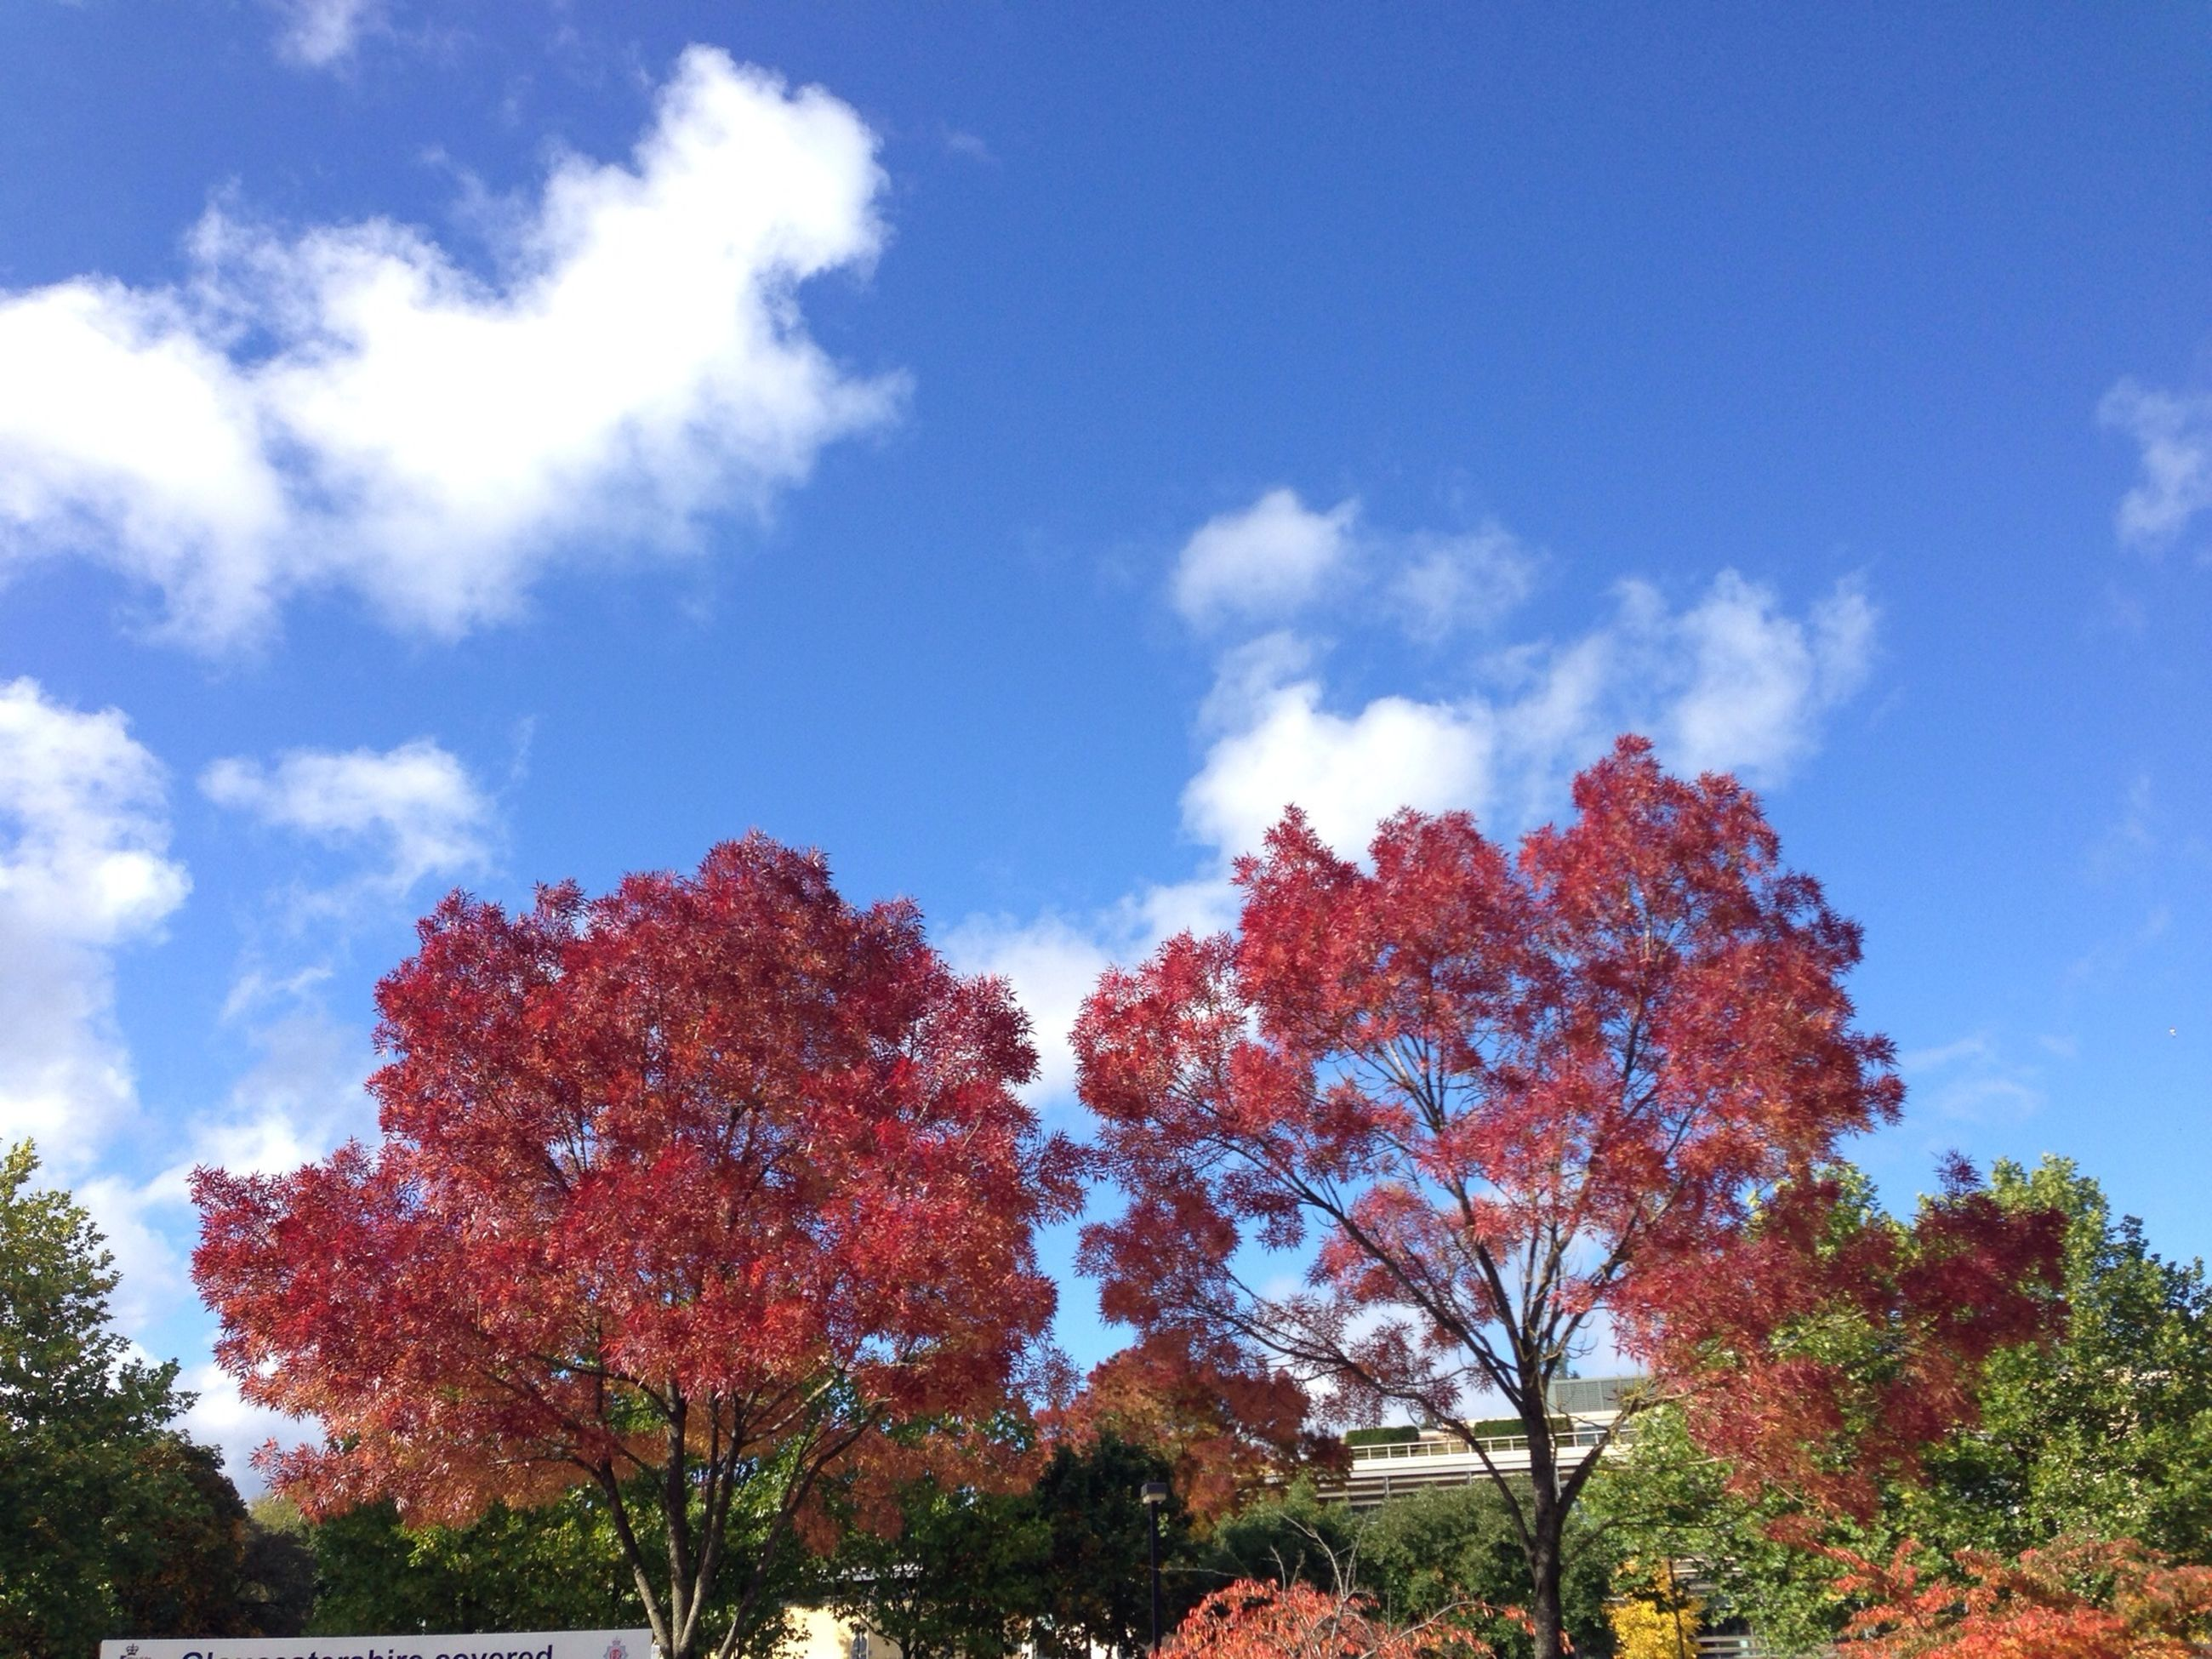 tree, low angle view, sky, autumn, blue, beauty in nature, cloud - sky, growth, change, nature, tranquility, branch, cloud, season, scenics, tranquil scene, day, red, outdoors, no people